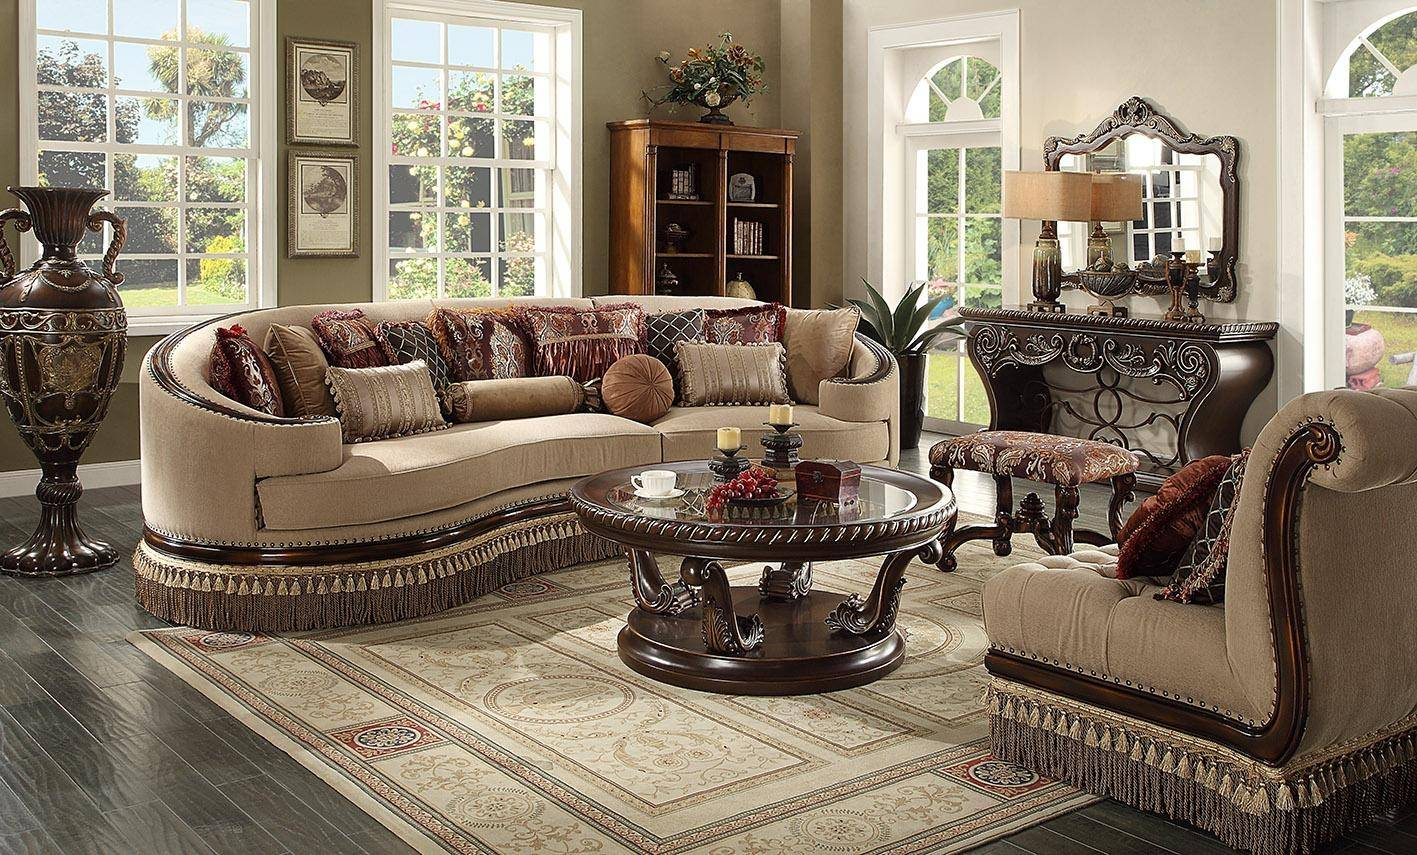 Homey Design Hd 1629 Victorian Upholstery Cappuccino Sectional